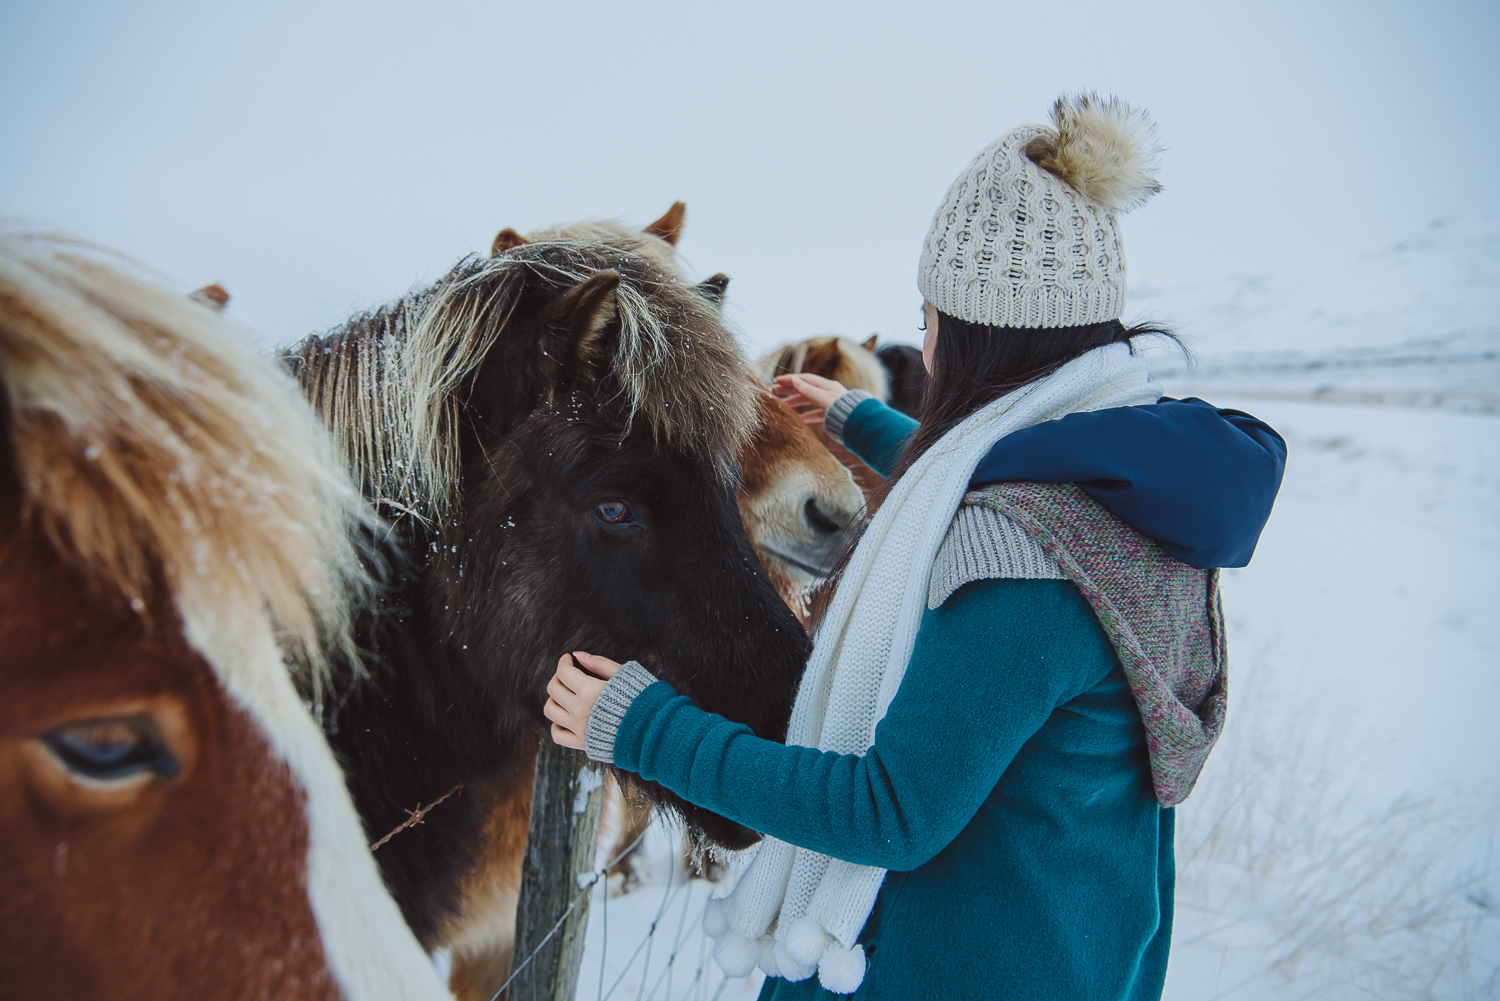 iceland ring road horses 24